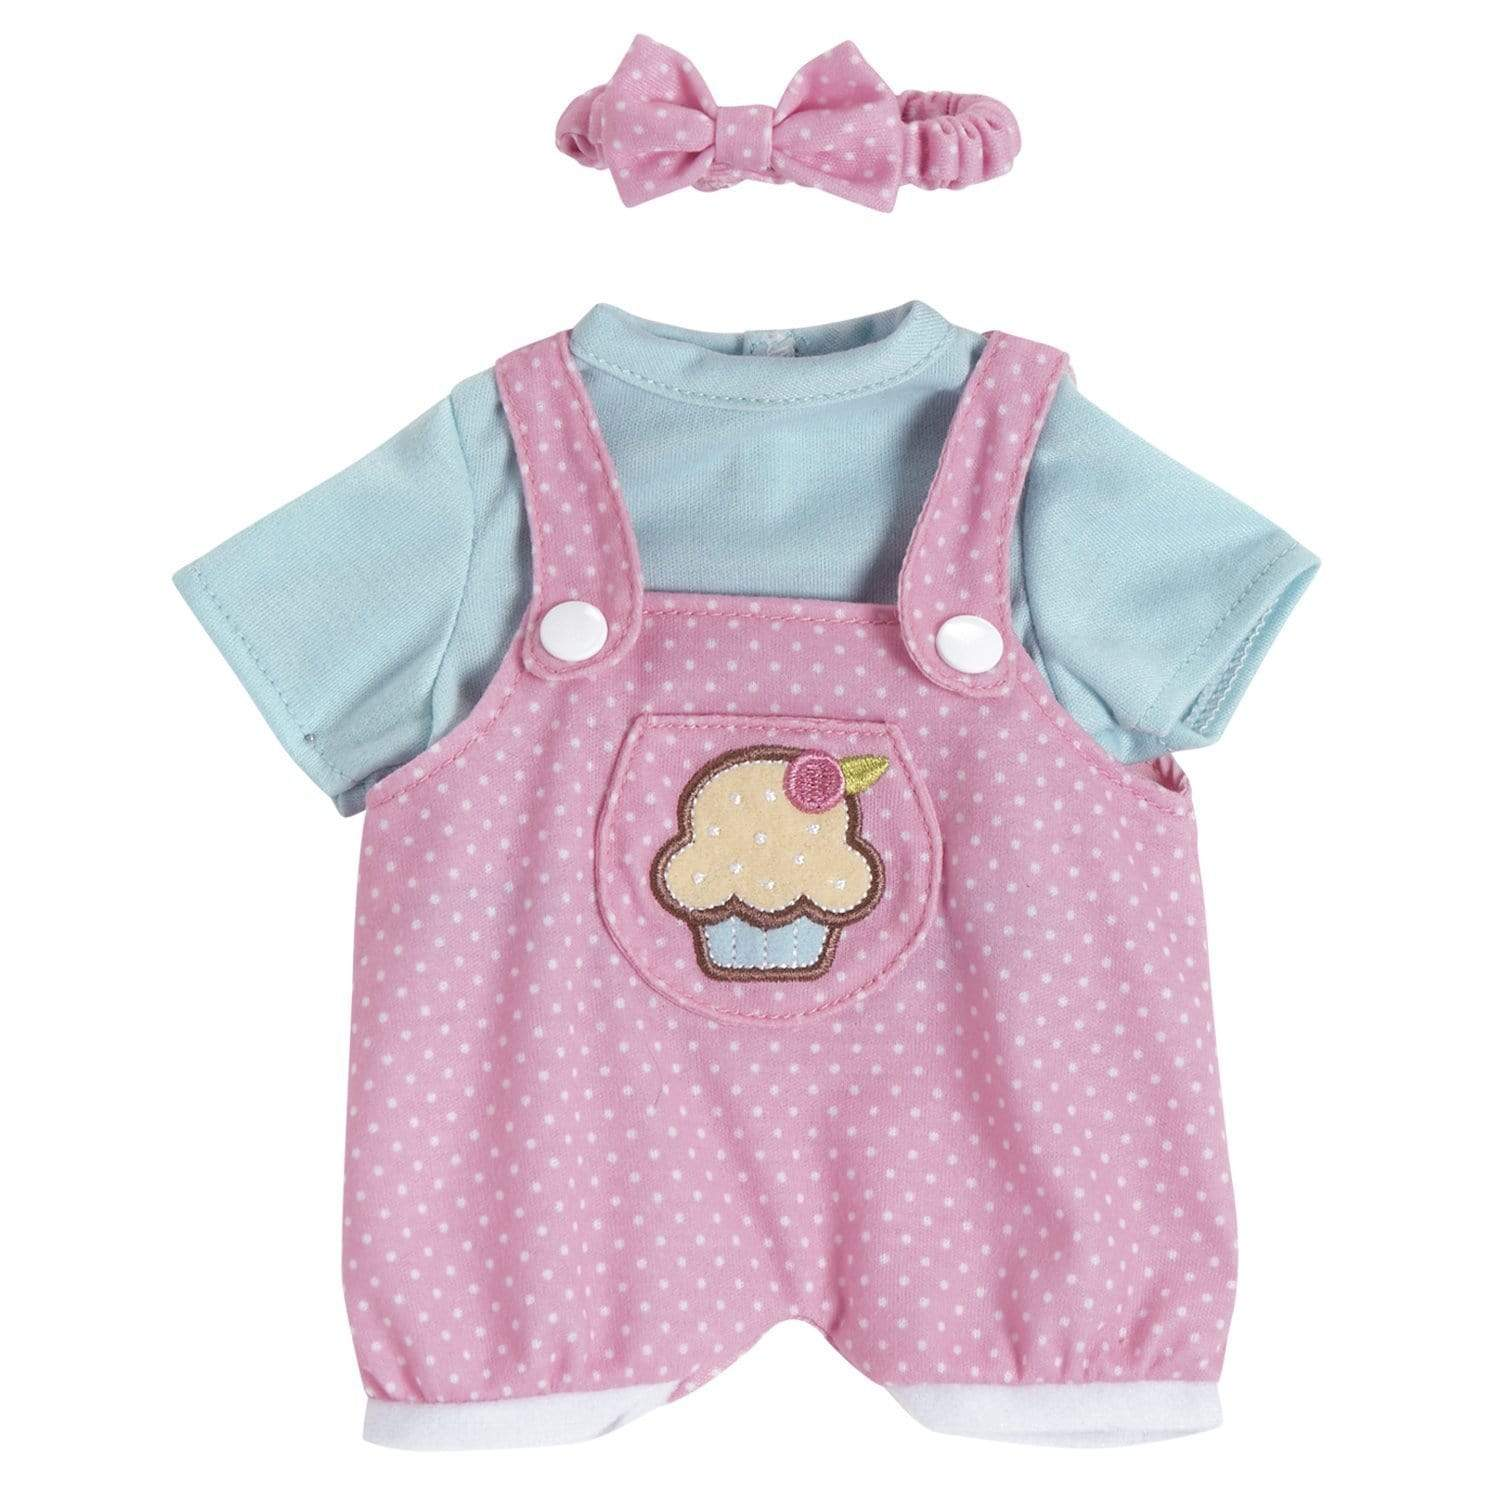 cupcake jumper baby doll clothes fits 13 playtime doll adora rh adoraplay com doll clothes patterns free 12 inch doll clothes bloodborne